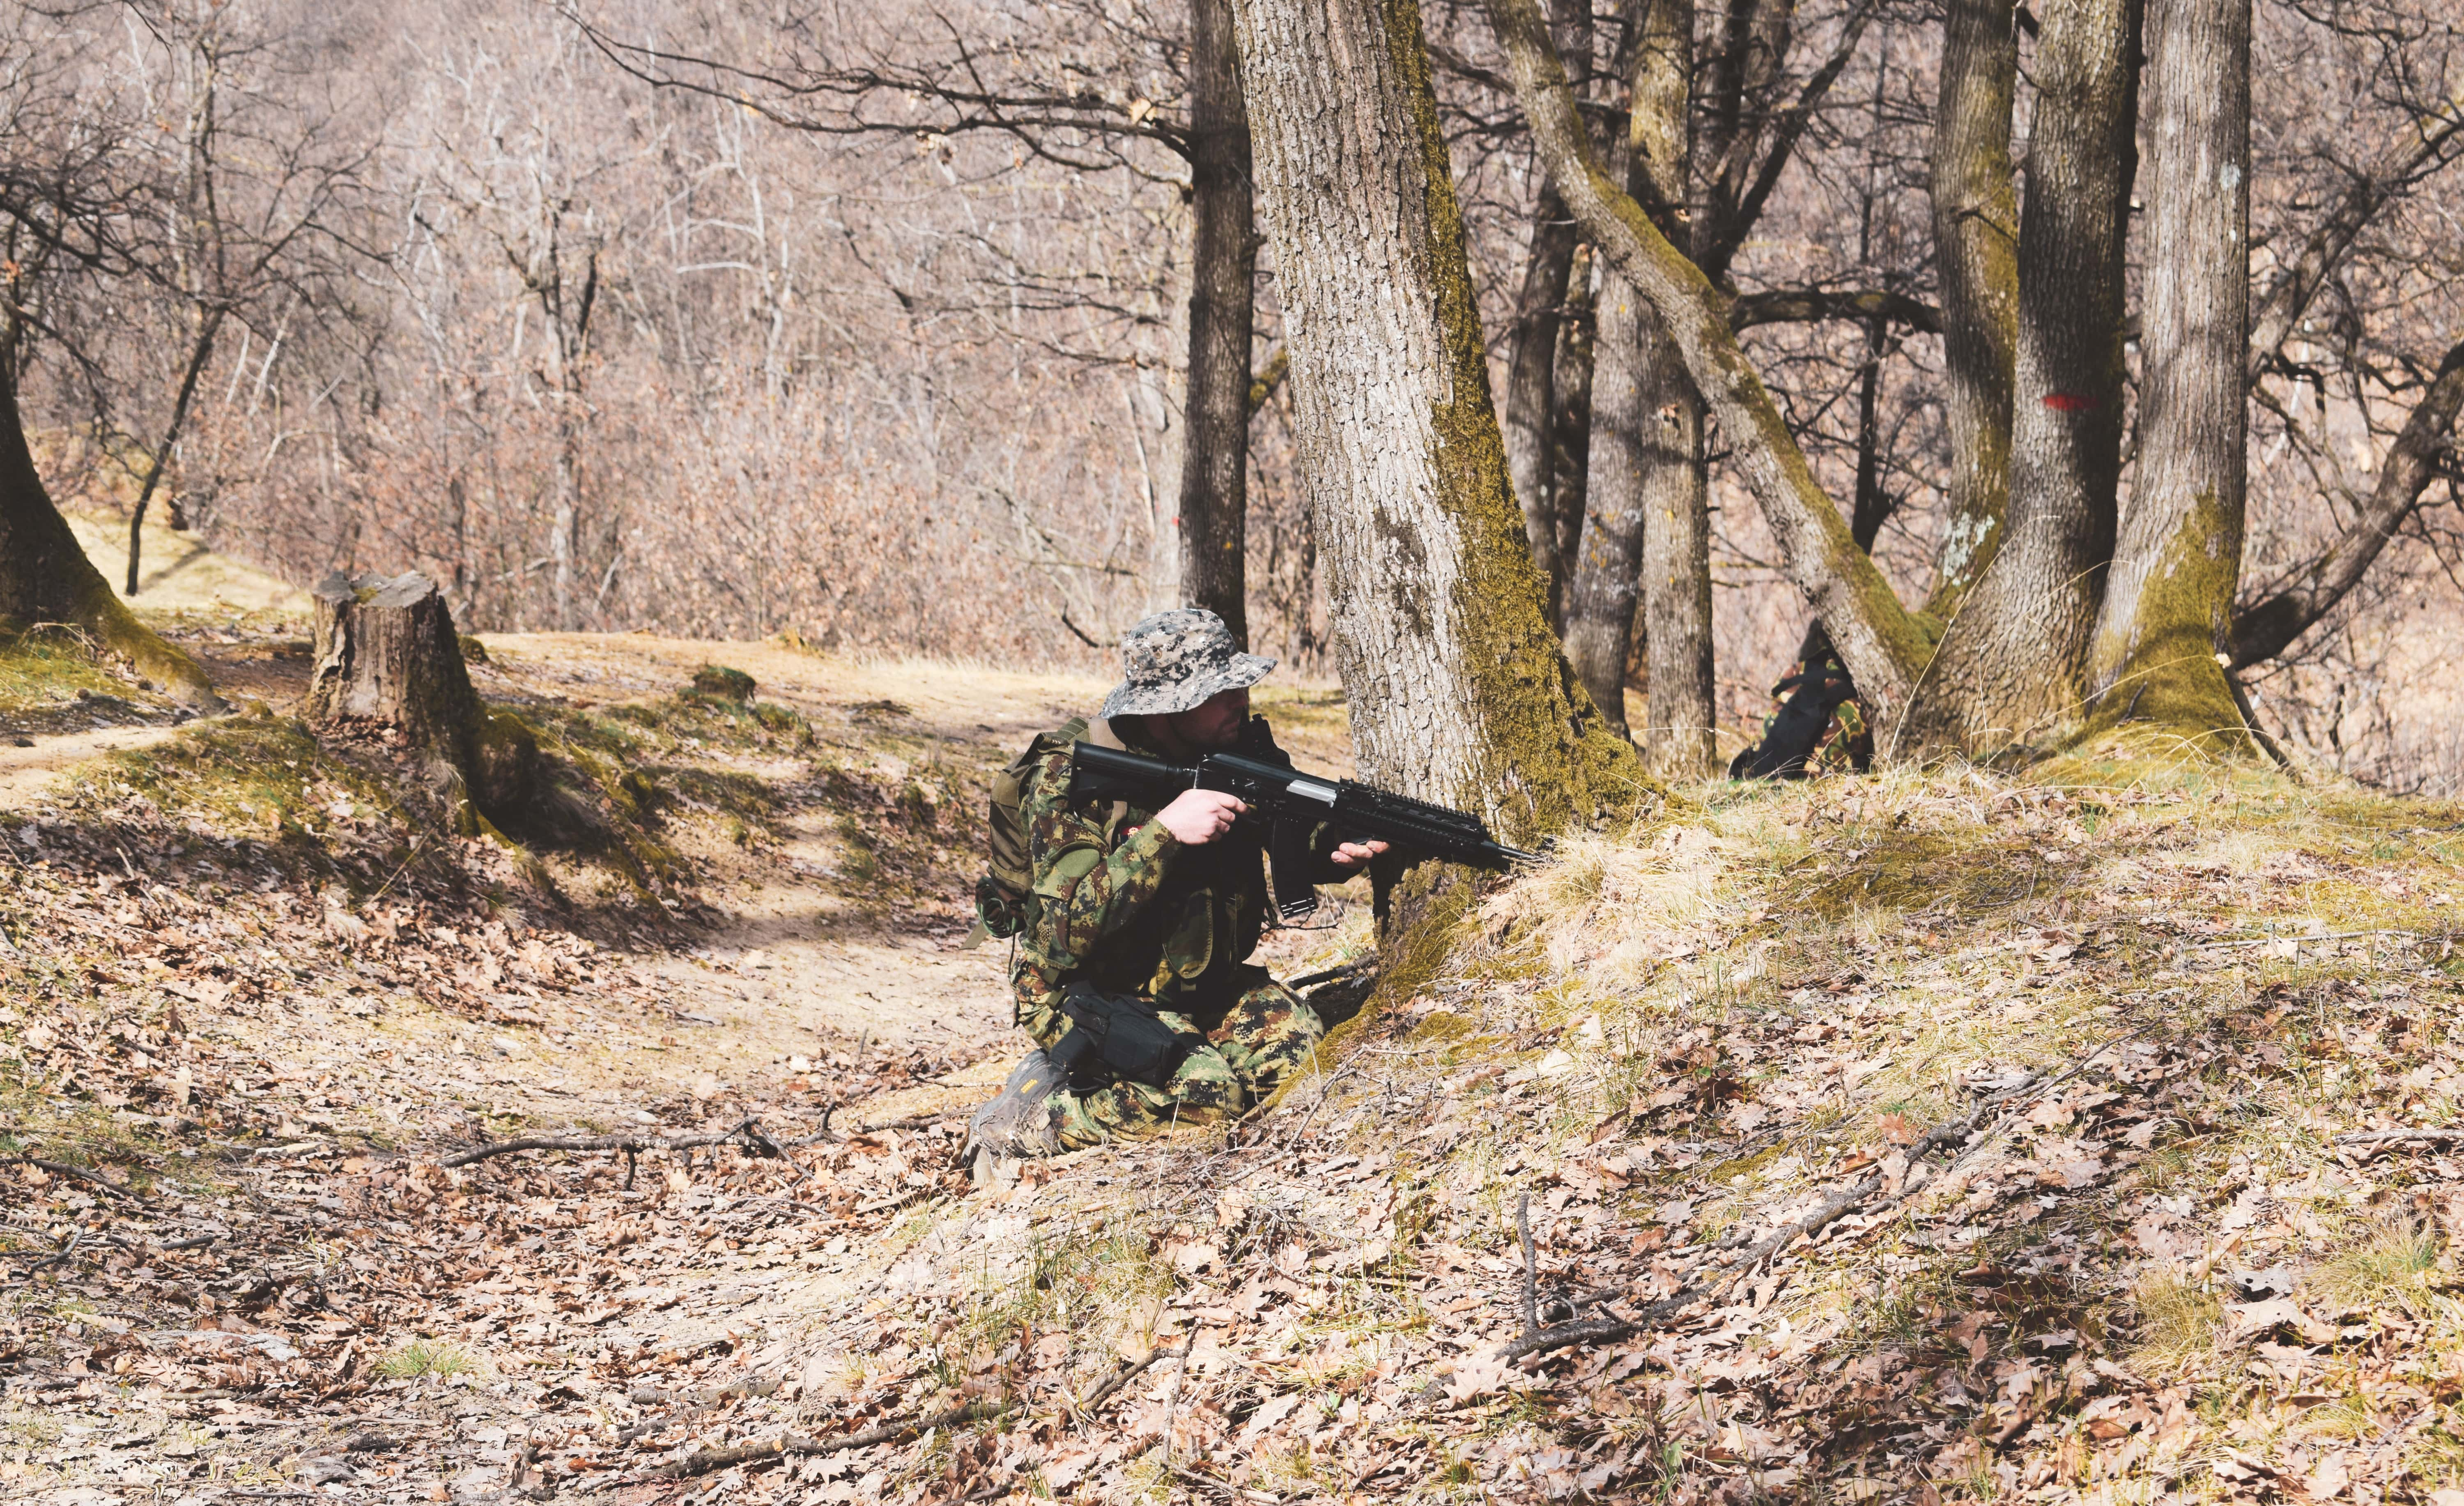 Airsoft player in the Woods